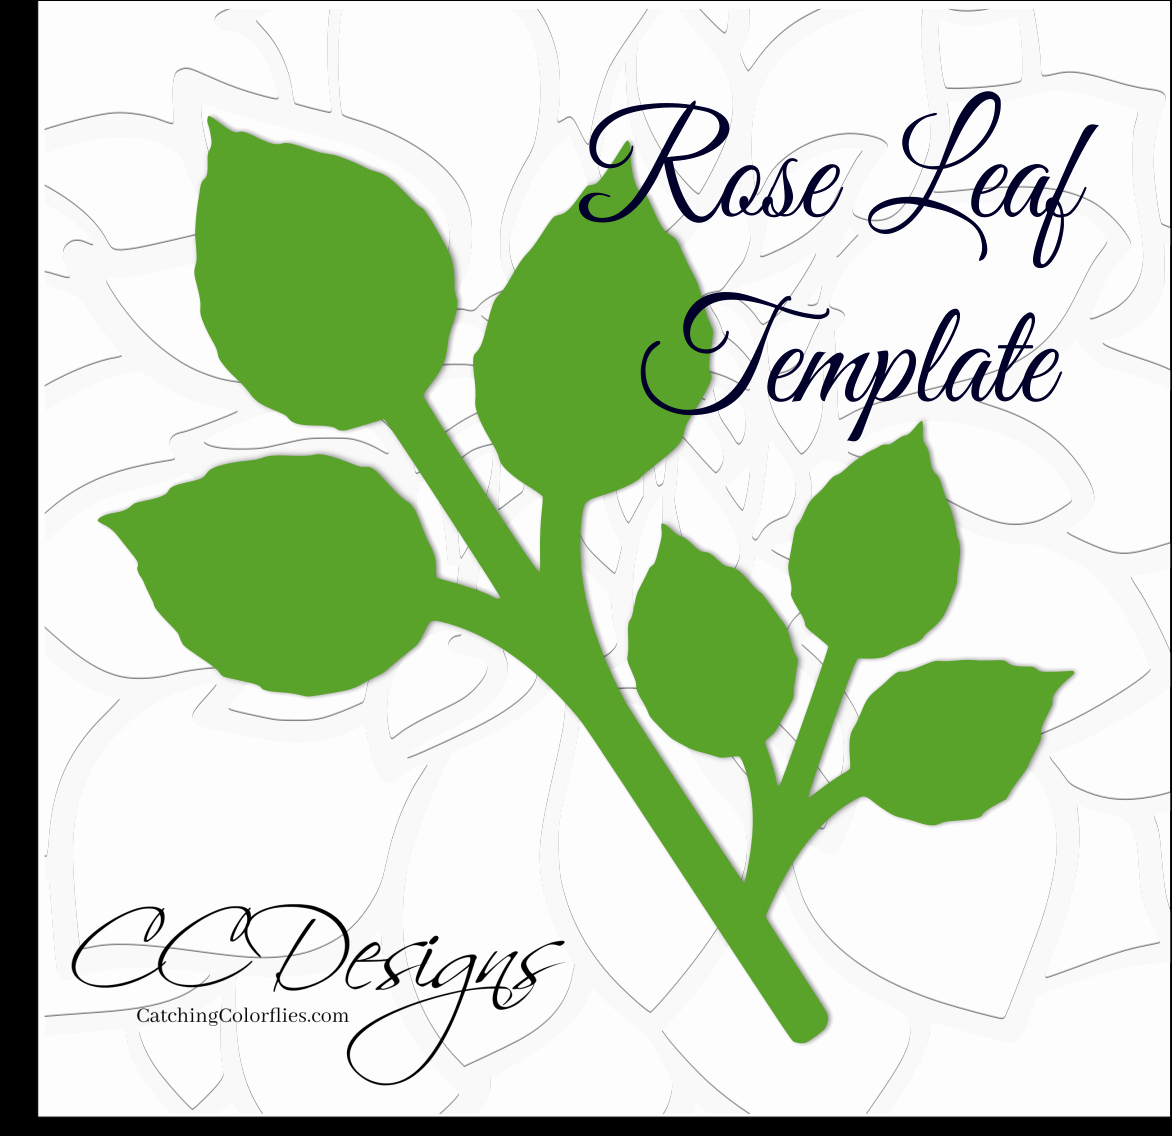 Paper Flower Leaf Template Elegant Paper Flower Templates with Full Tutorials Printable Pdf